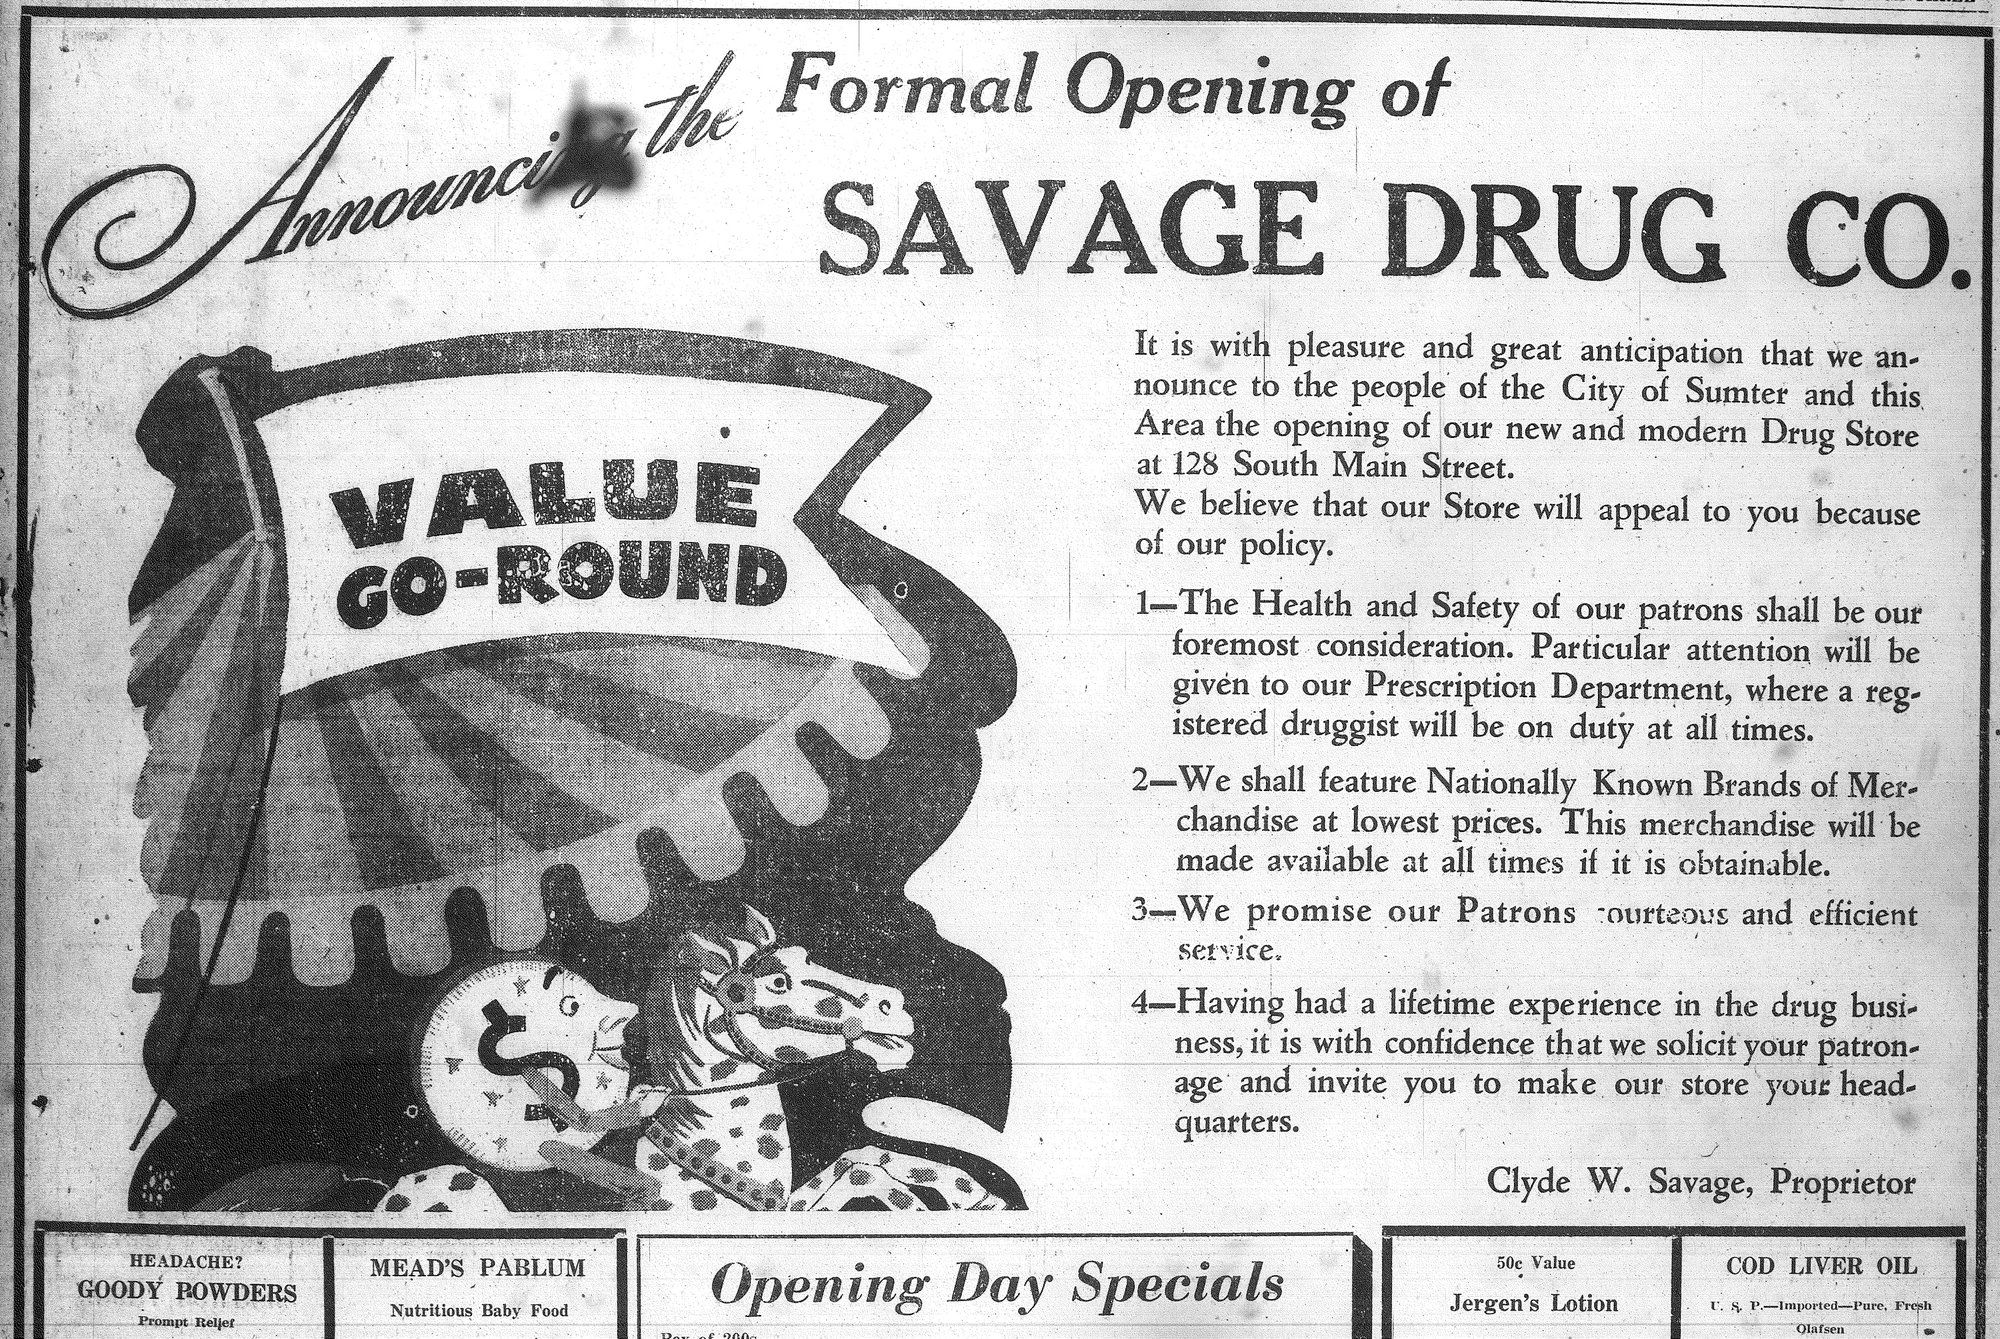 The Savage Drug Company announced its opening in the Nov. 23, 1945, edition of The Sumter Daily Item.